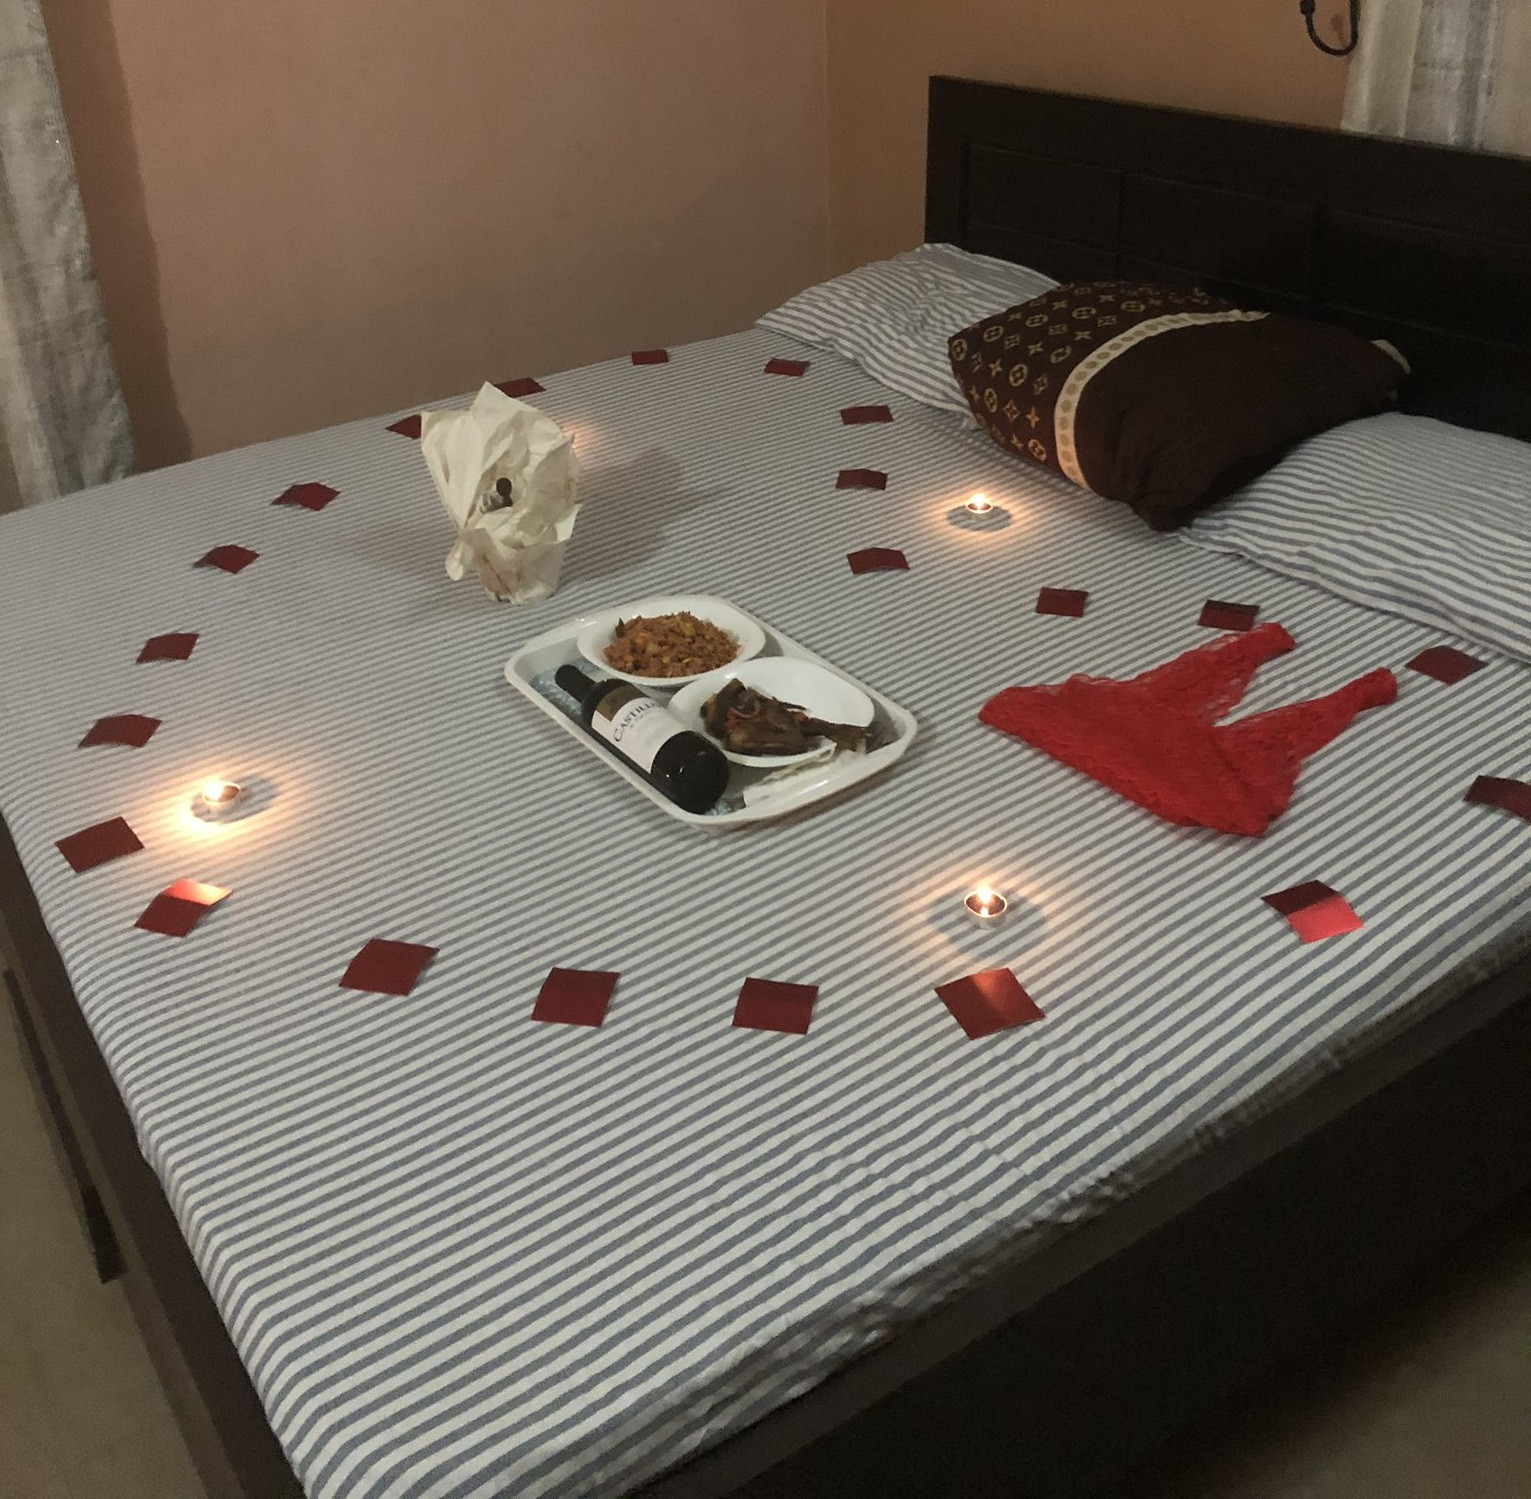 See the sweet romantic surprise a lady received from her man